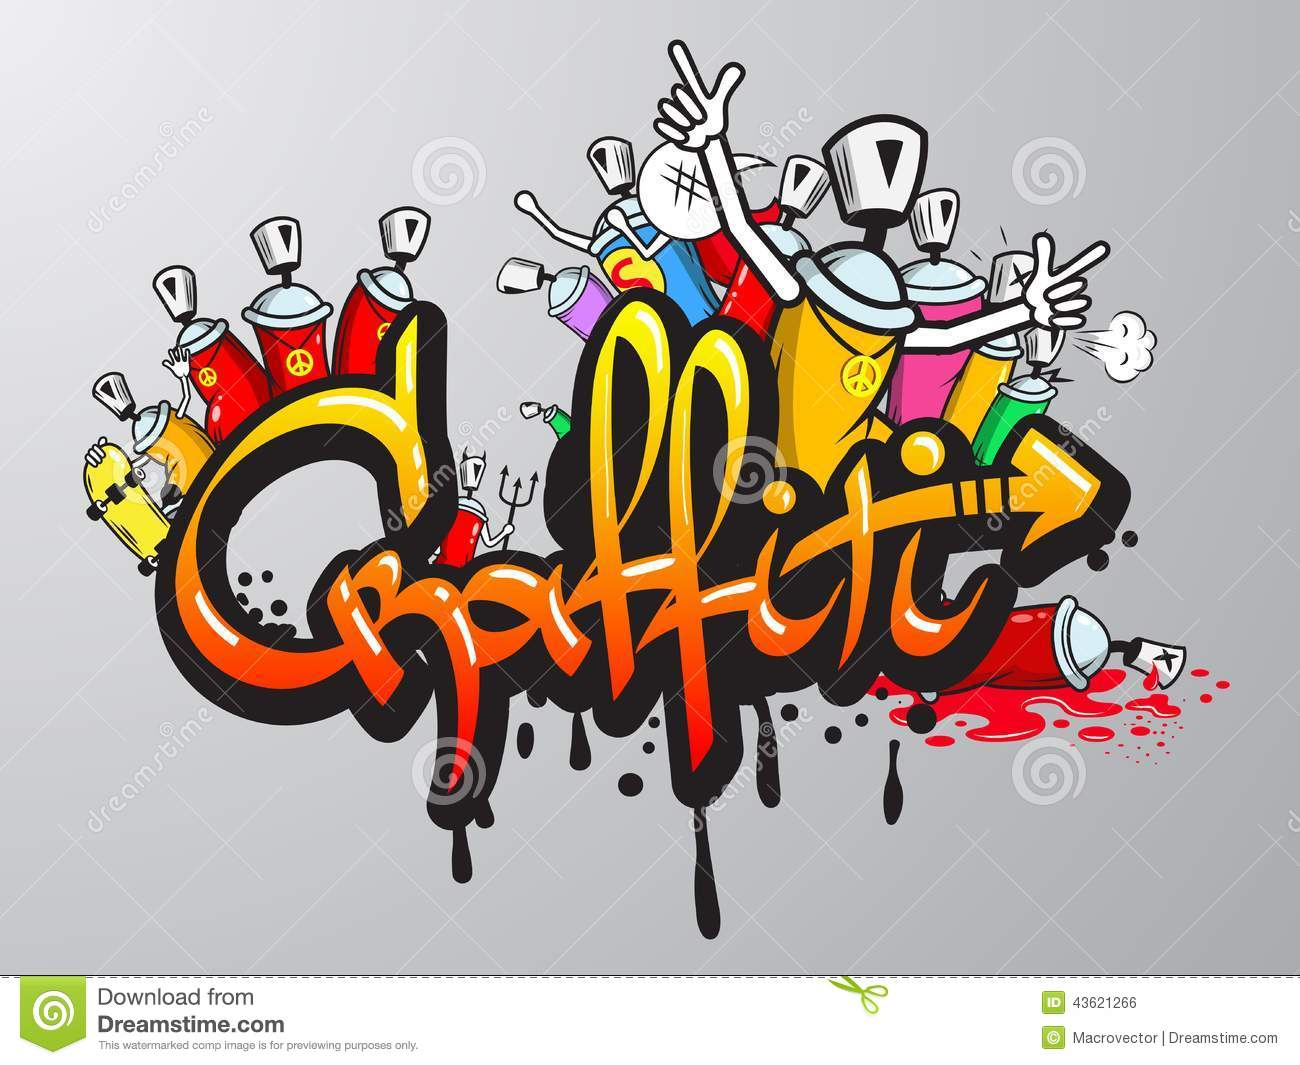 graffiti characters print stock vector image 43621266. Black Bedroom Furniture Sets. Home Design Ideas